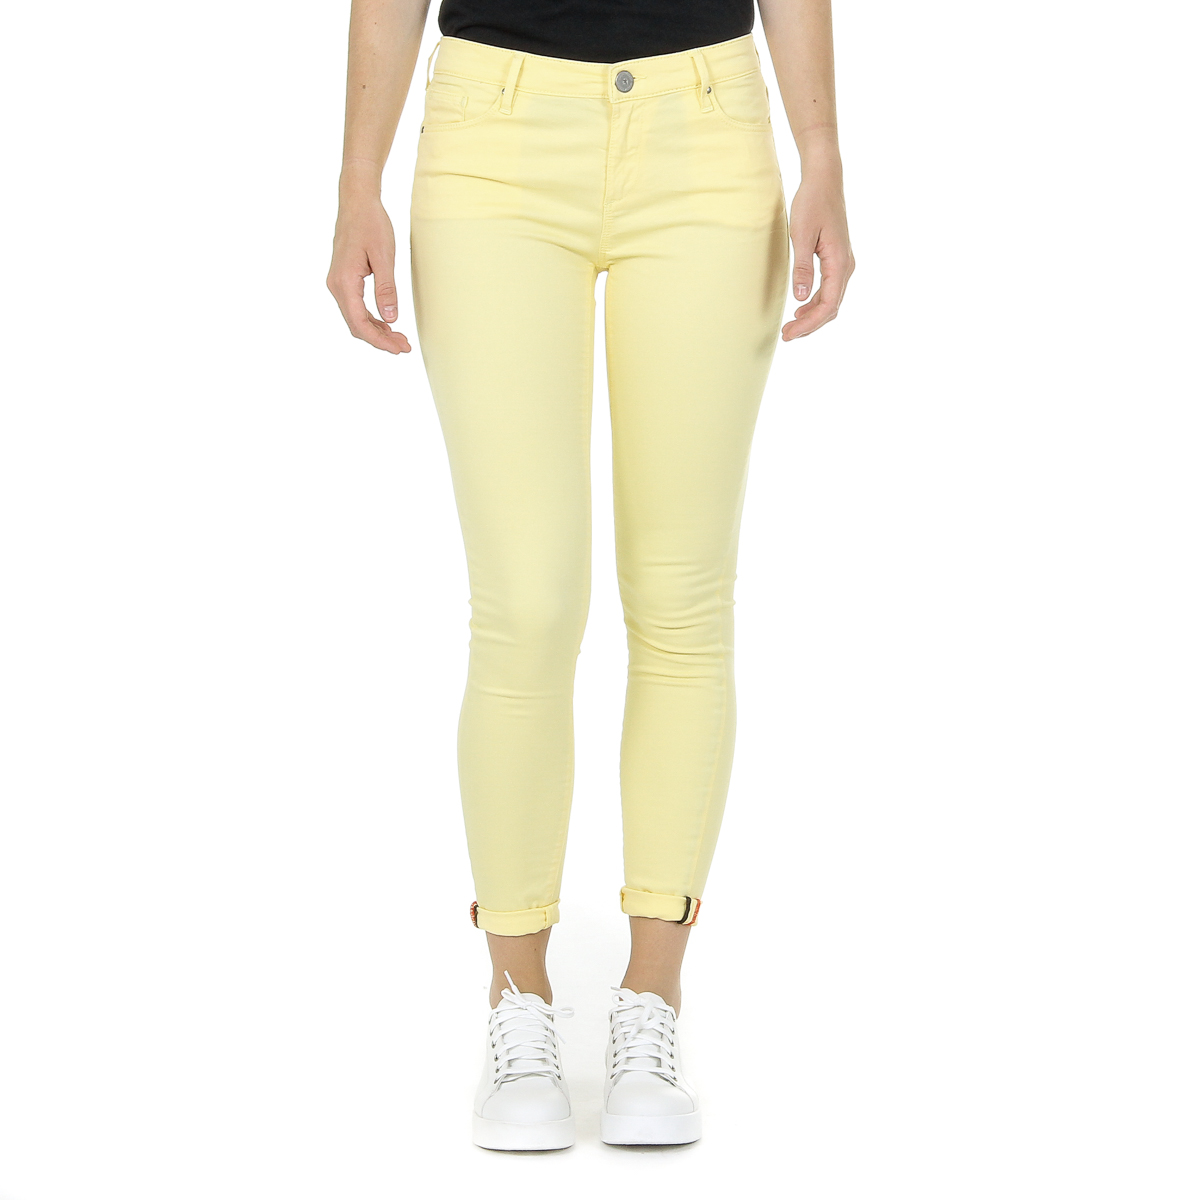 Primary image for Andrew Charles Womens Trousers Yellow CLAIRE